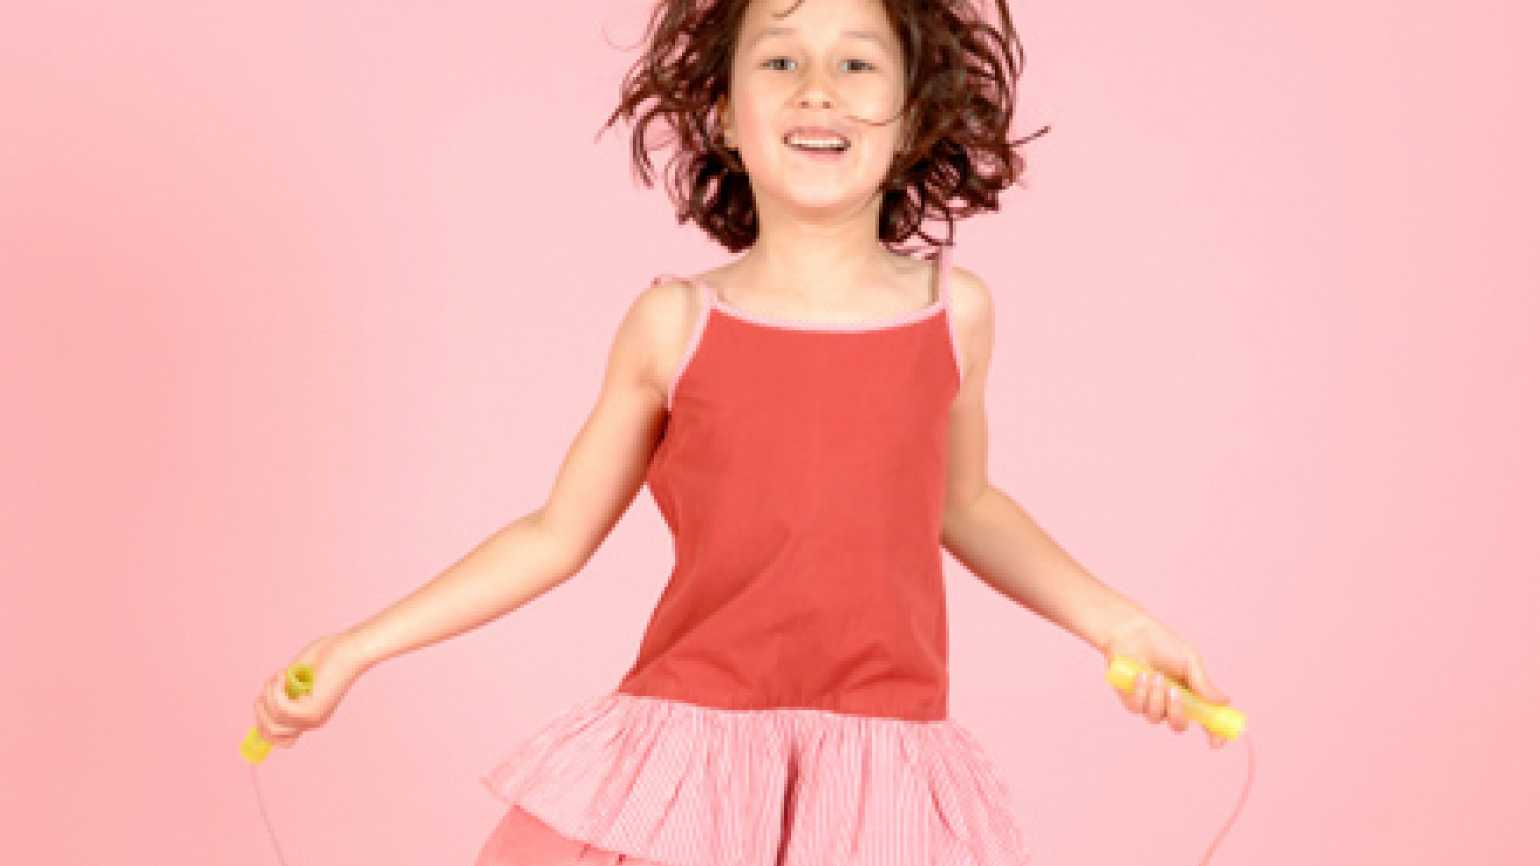 A girl joyously jumping rope inspired this Advent devotion from Patricia Lorenz.